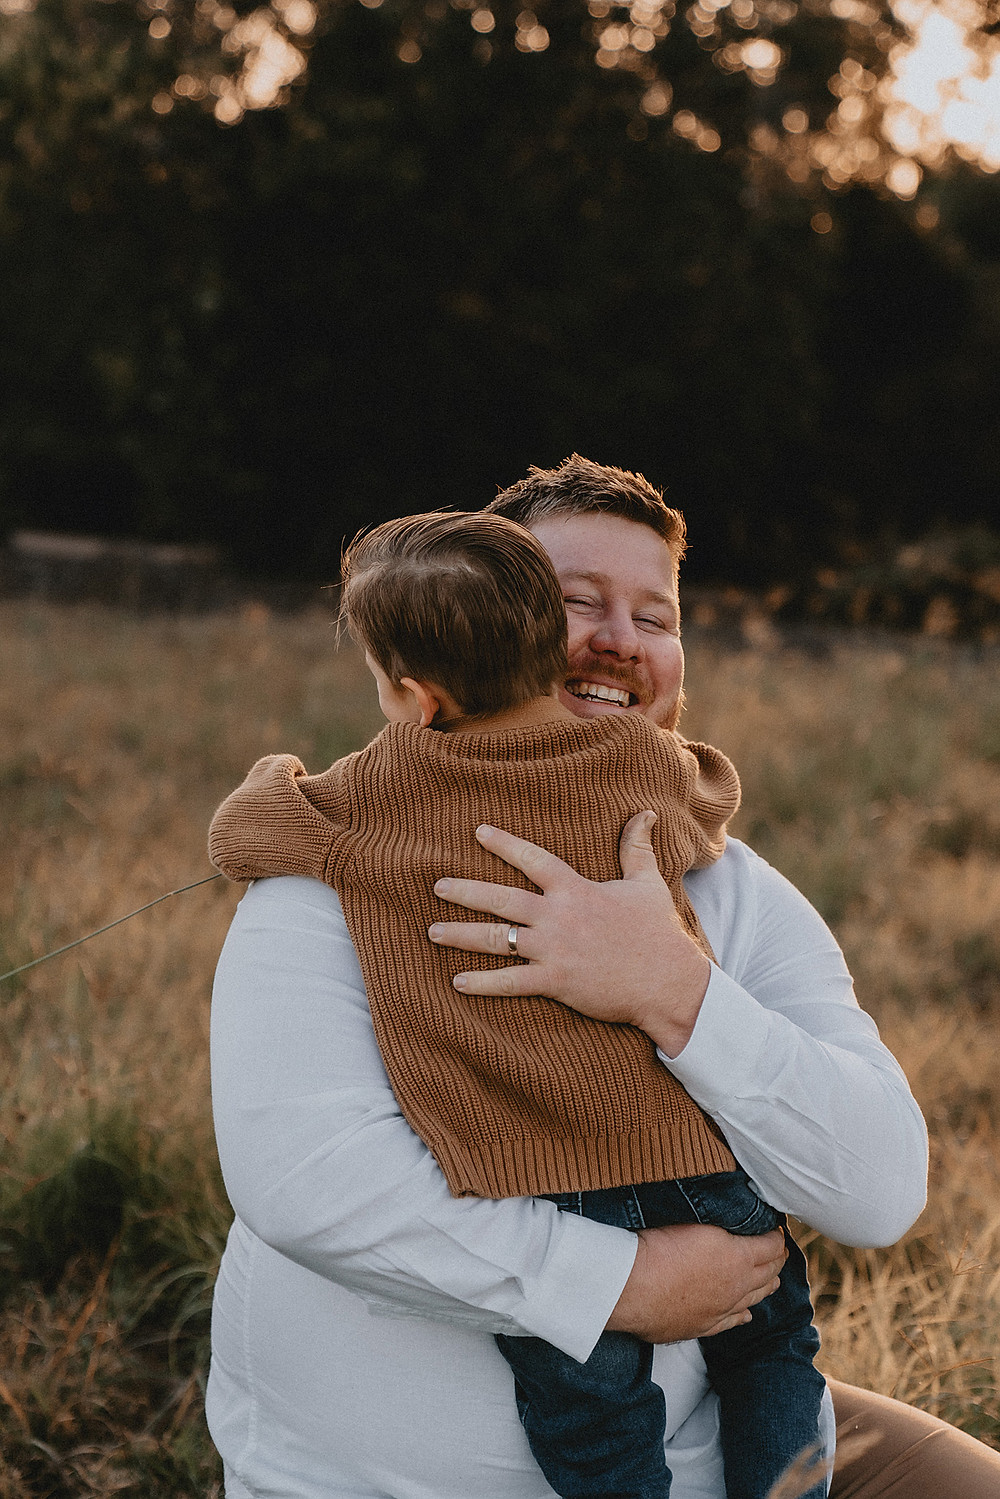 Father and son embrace in a hug in a sunny field with long grass